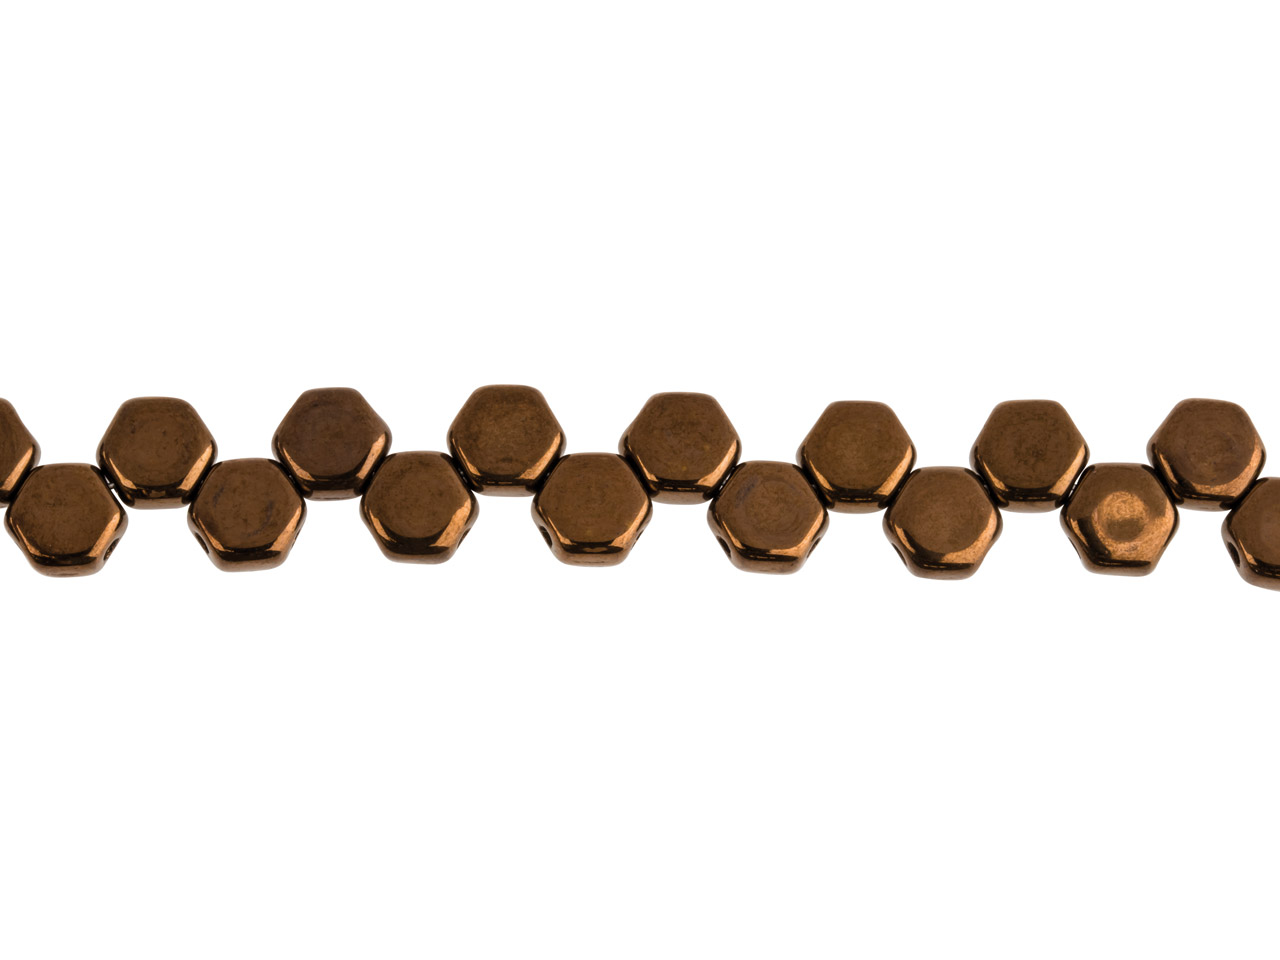 Honeycomb 6mm Czech Beads, Jet     Bronze, Strand Of 30 Beads